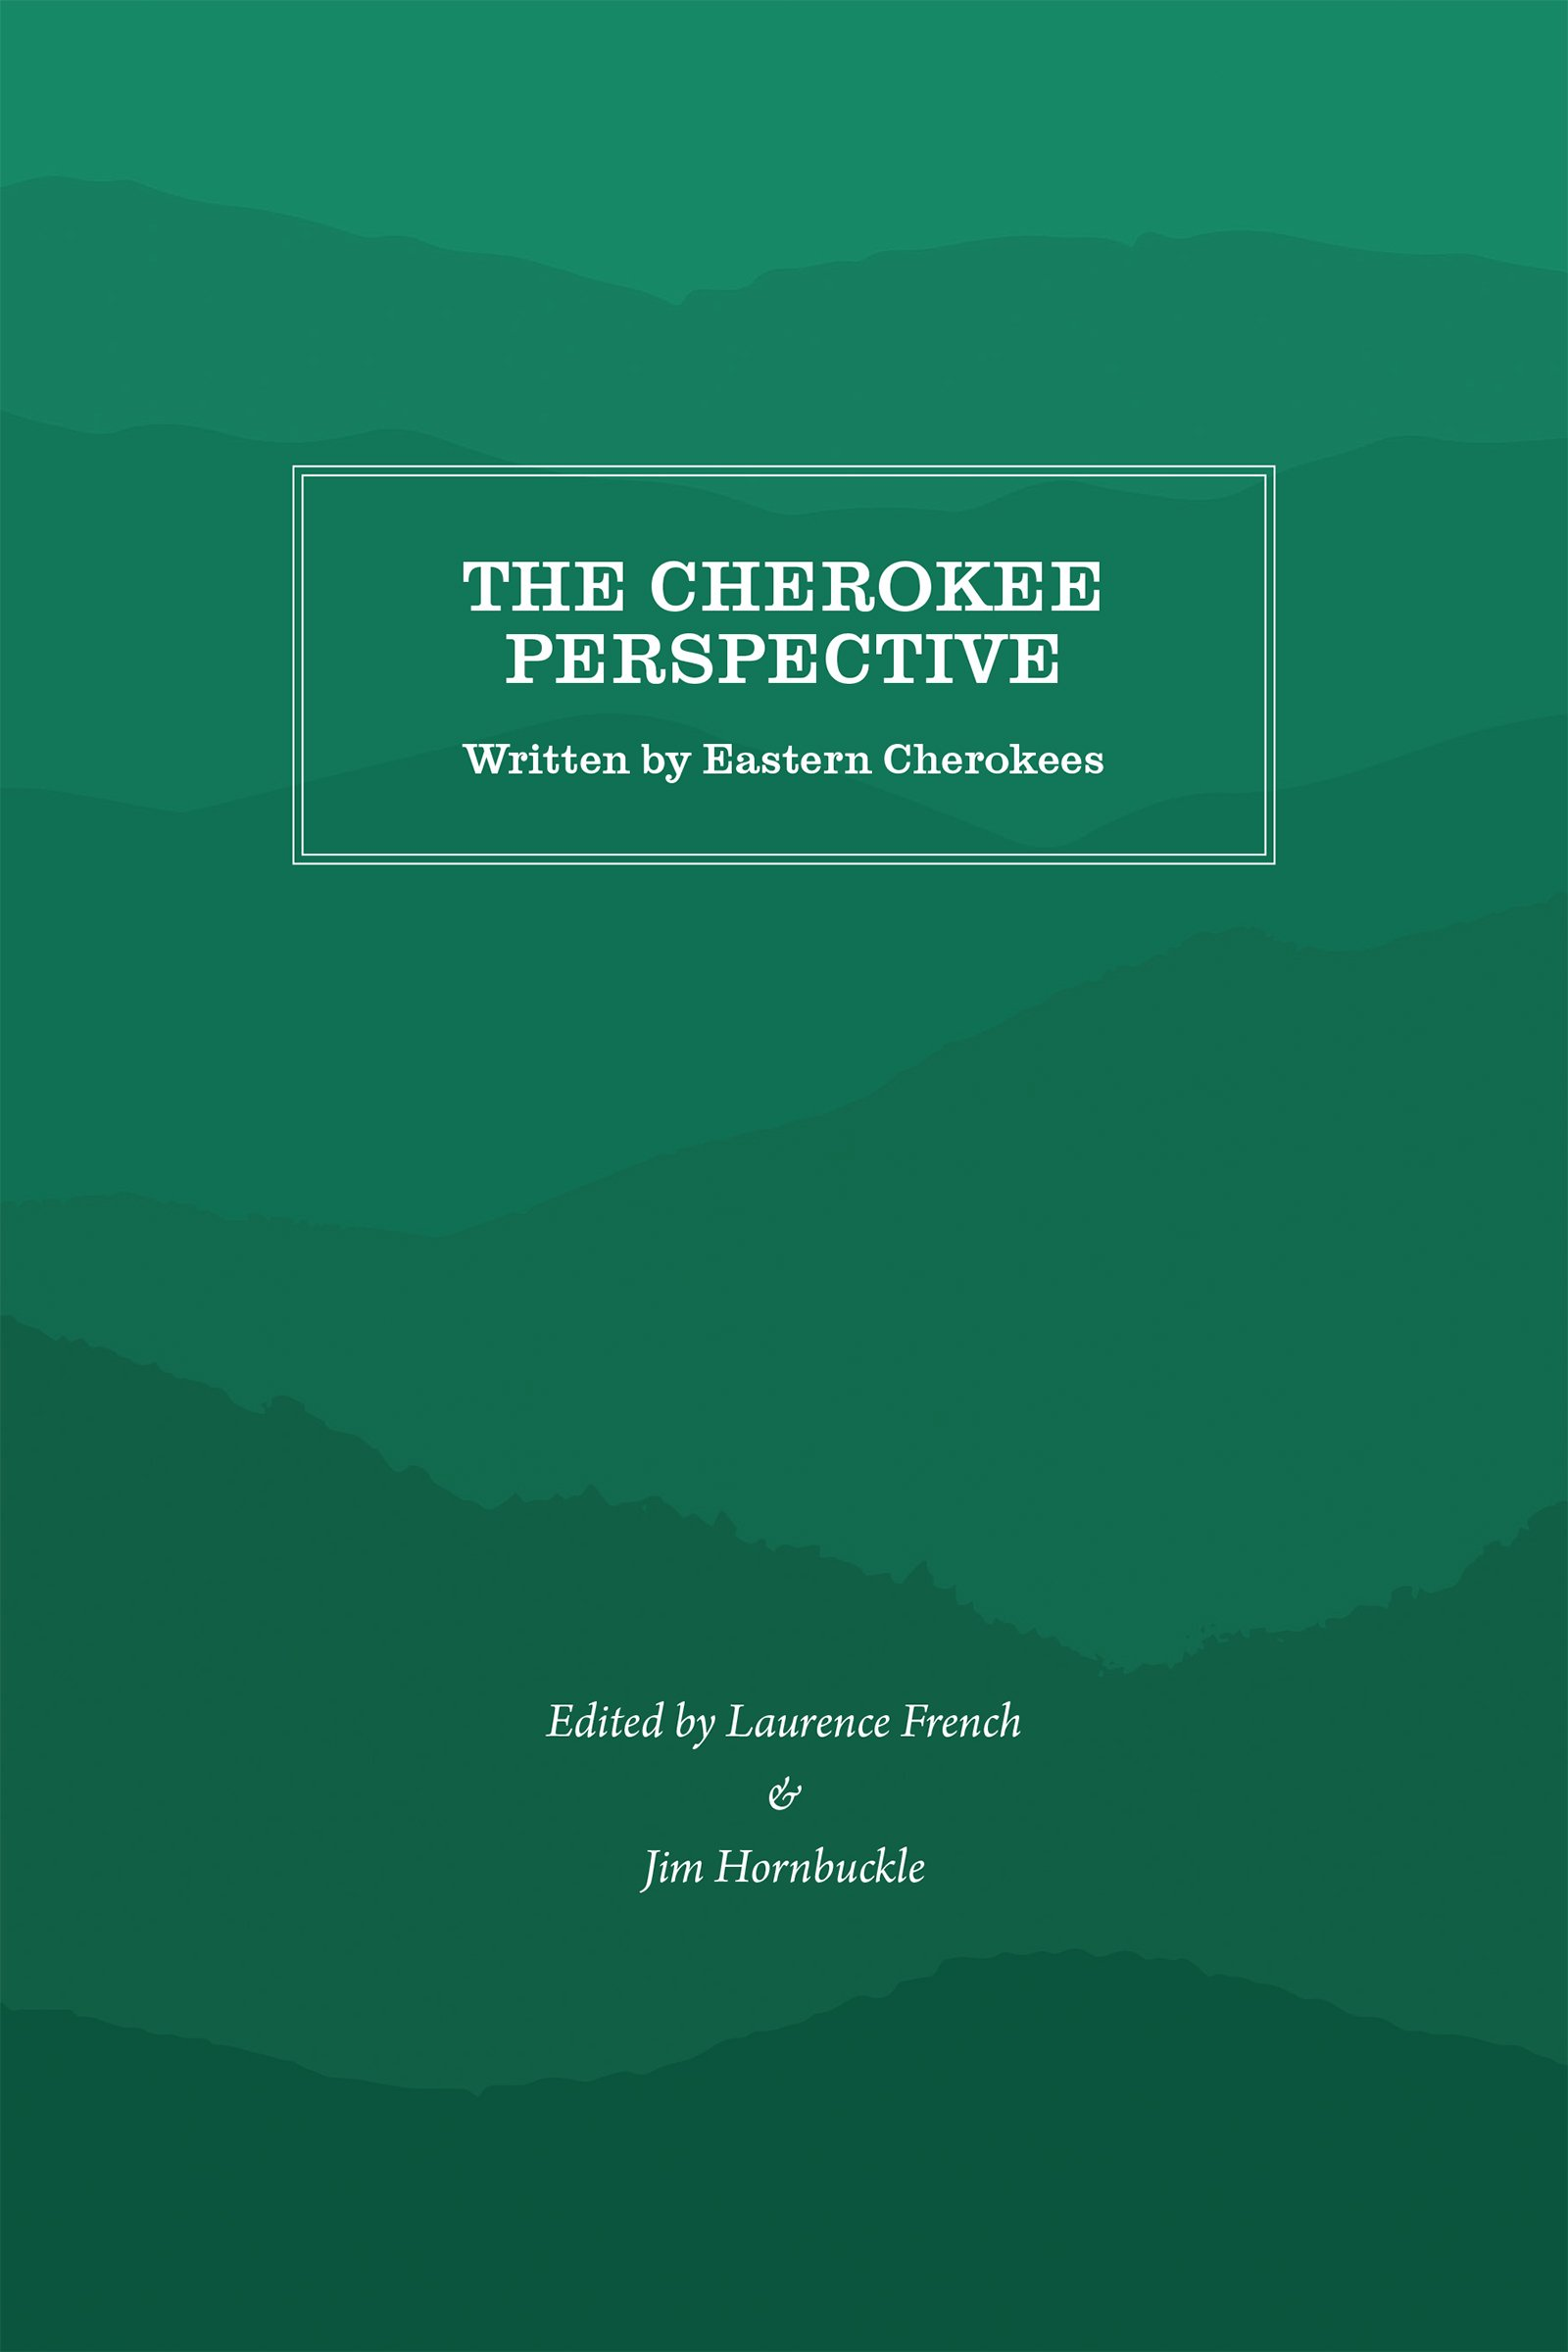 ALL CHEROKEE TITLES : Cherokee Publications, Your Native Source